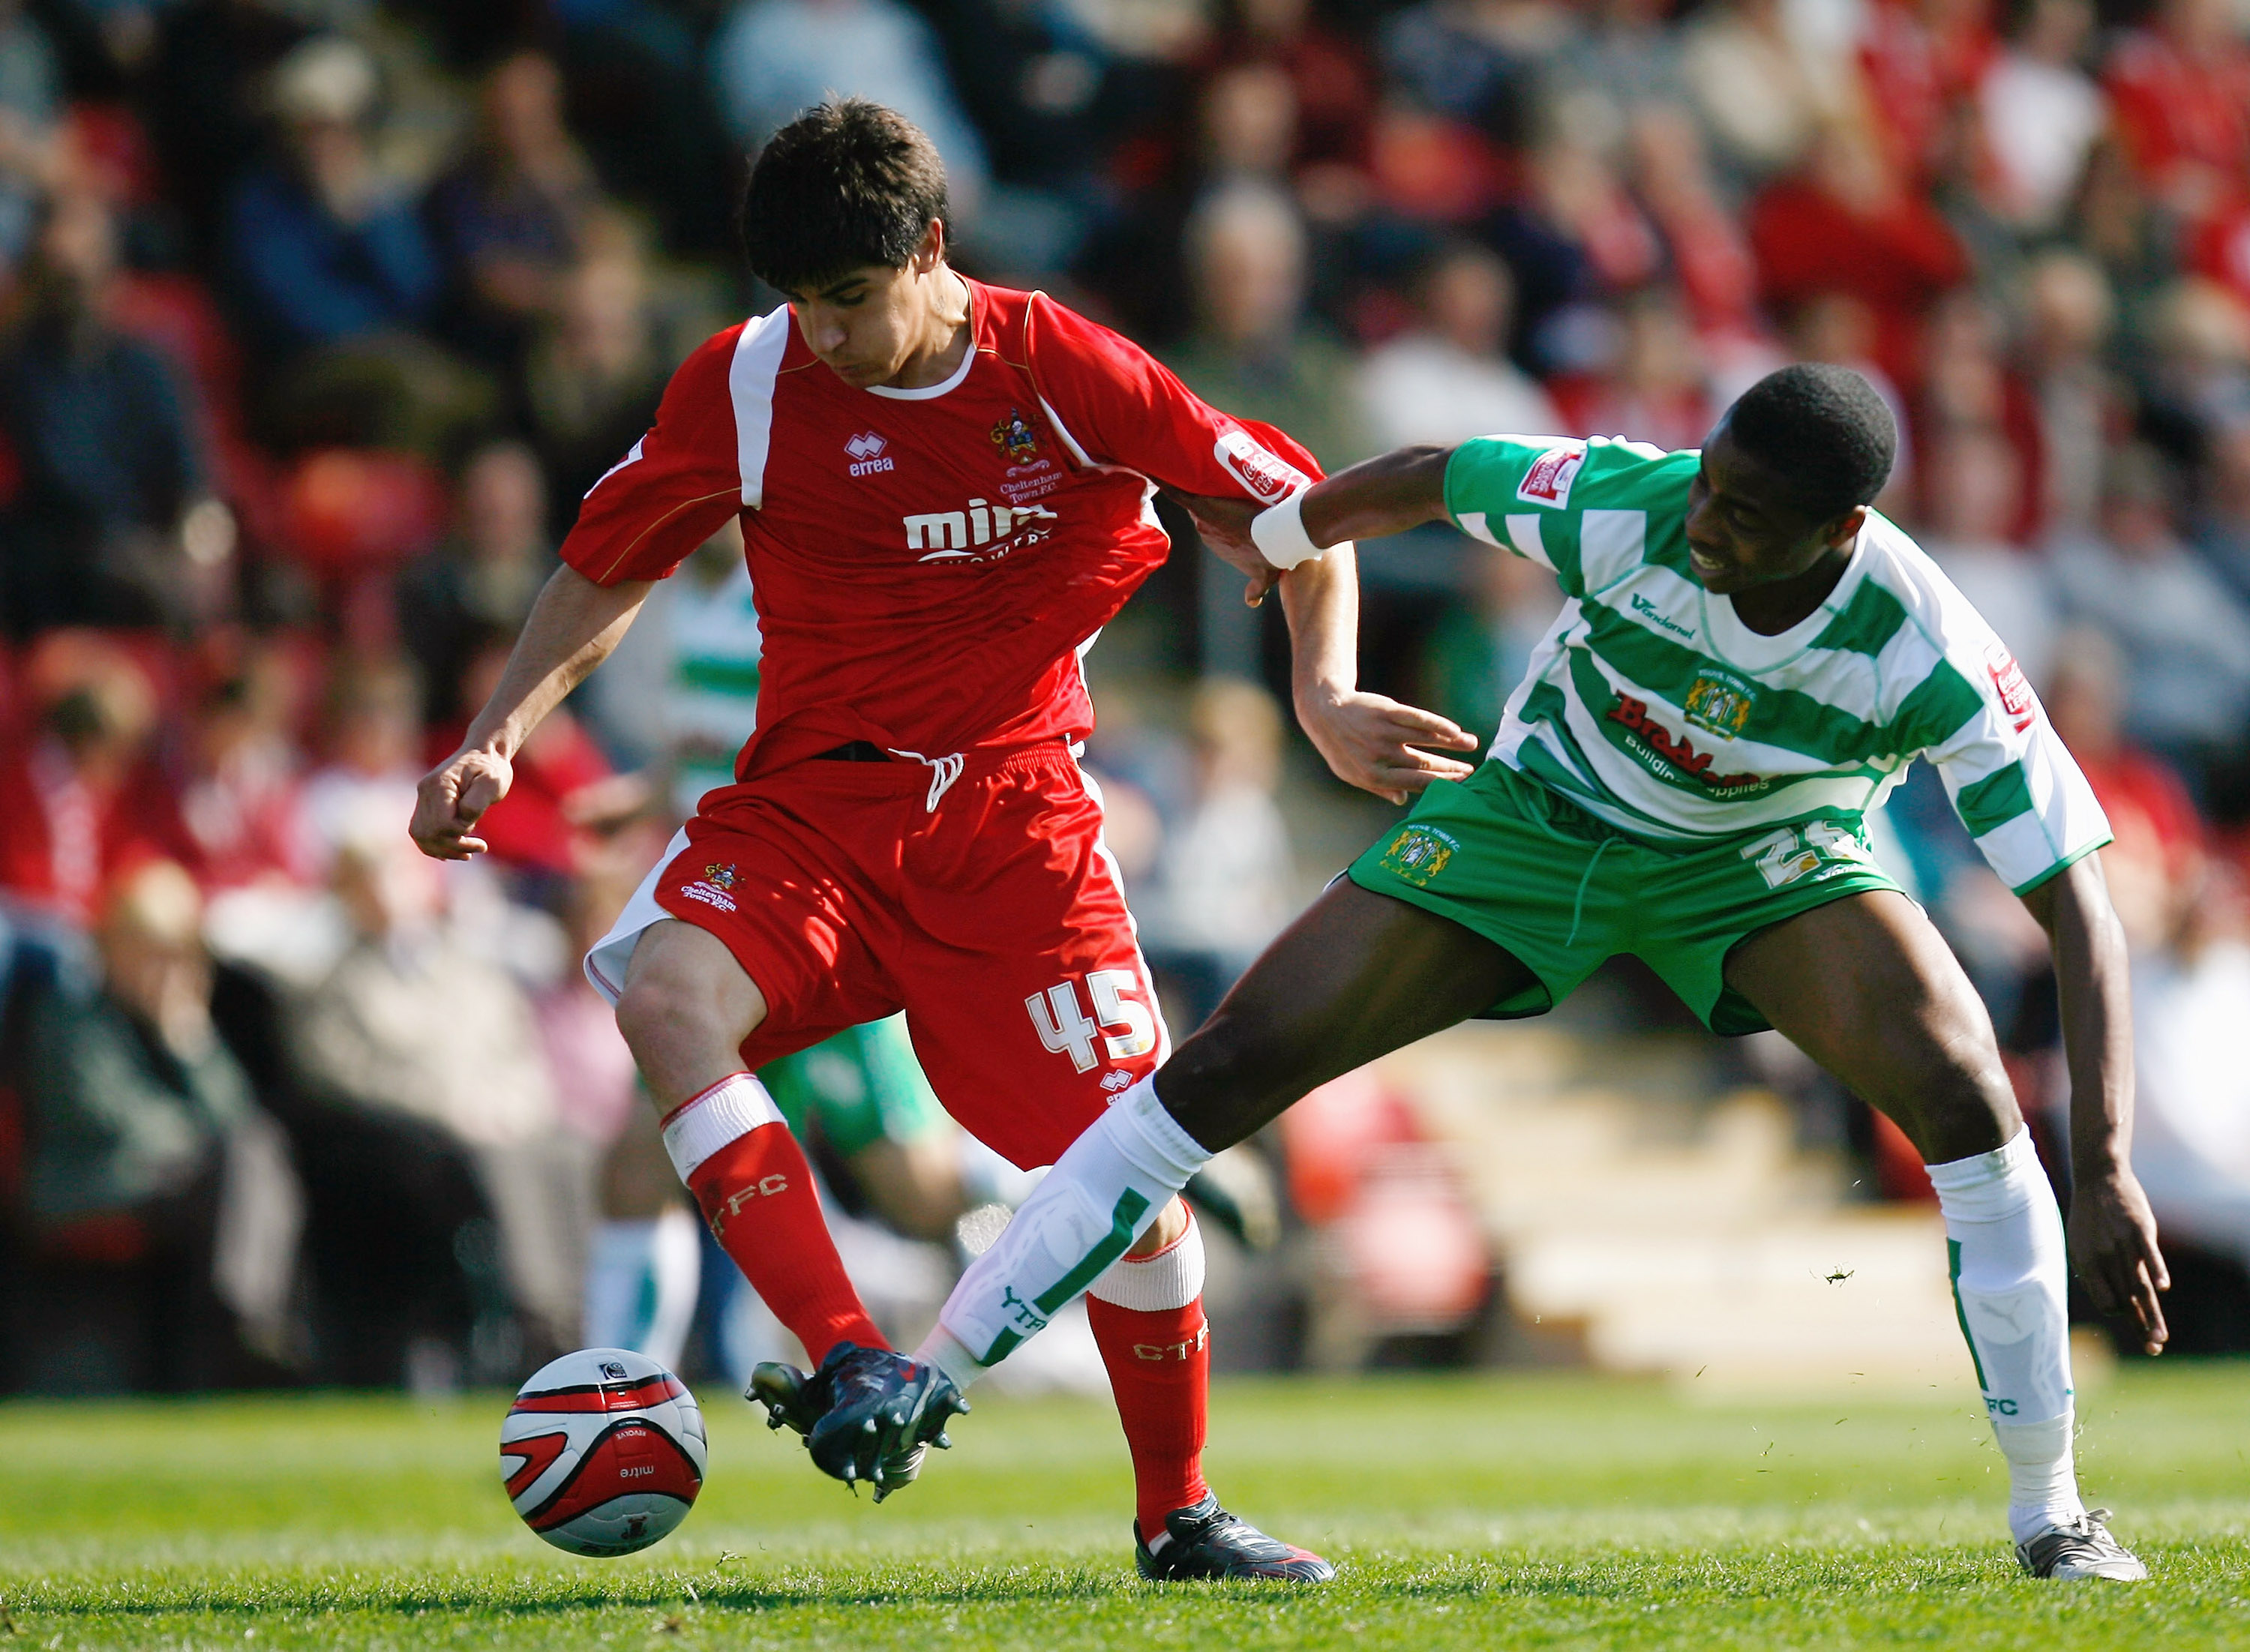 CHELTENHAM, UNITED KINGDOM - APRIL 13:  Jonathan Obika of Yeovil Town battles for the ball with Yuri Berchiche of Cheltenham Town during the Coca-Cola League One match between Cheltenham Town and Yeovil Town at Whaddon Road on April 13, 2009 in Cheltenham